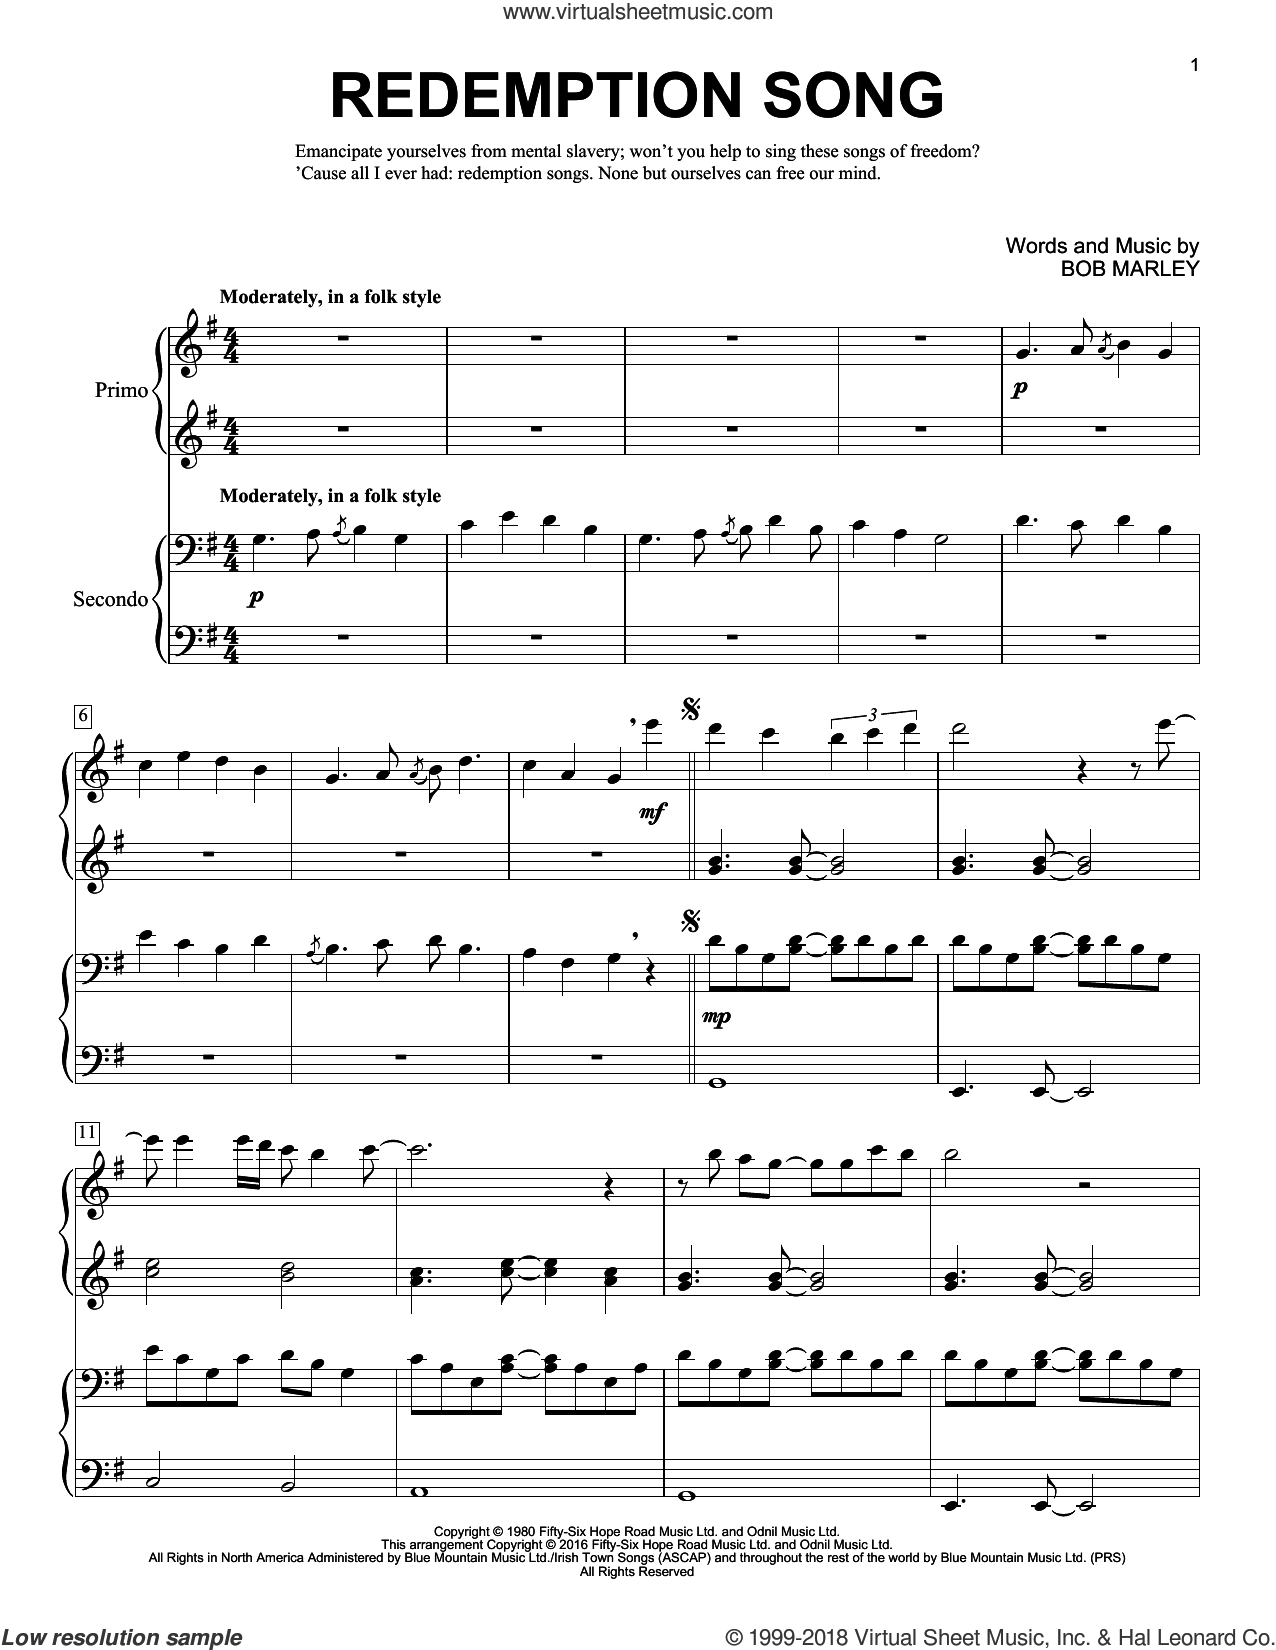 Redemption Song sheet music for piano four hands by Bob Marley, Brent Edstrom and Rihanna, intermediate skill level